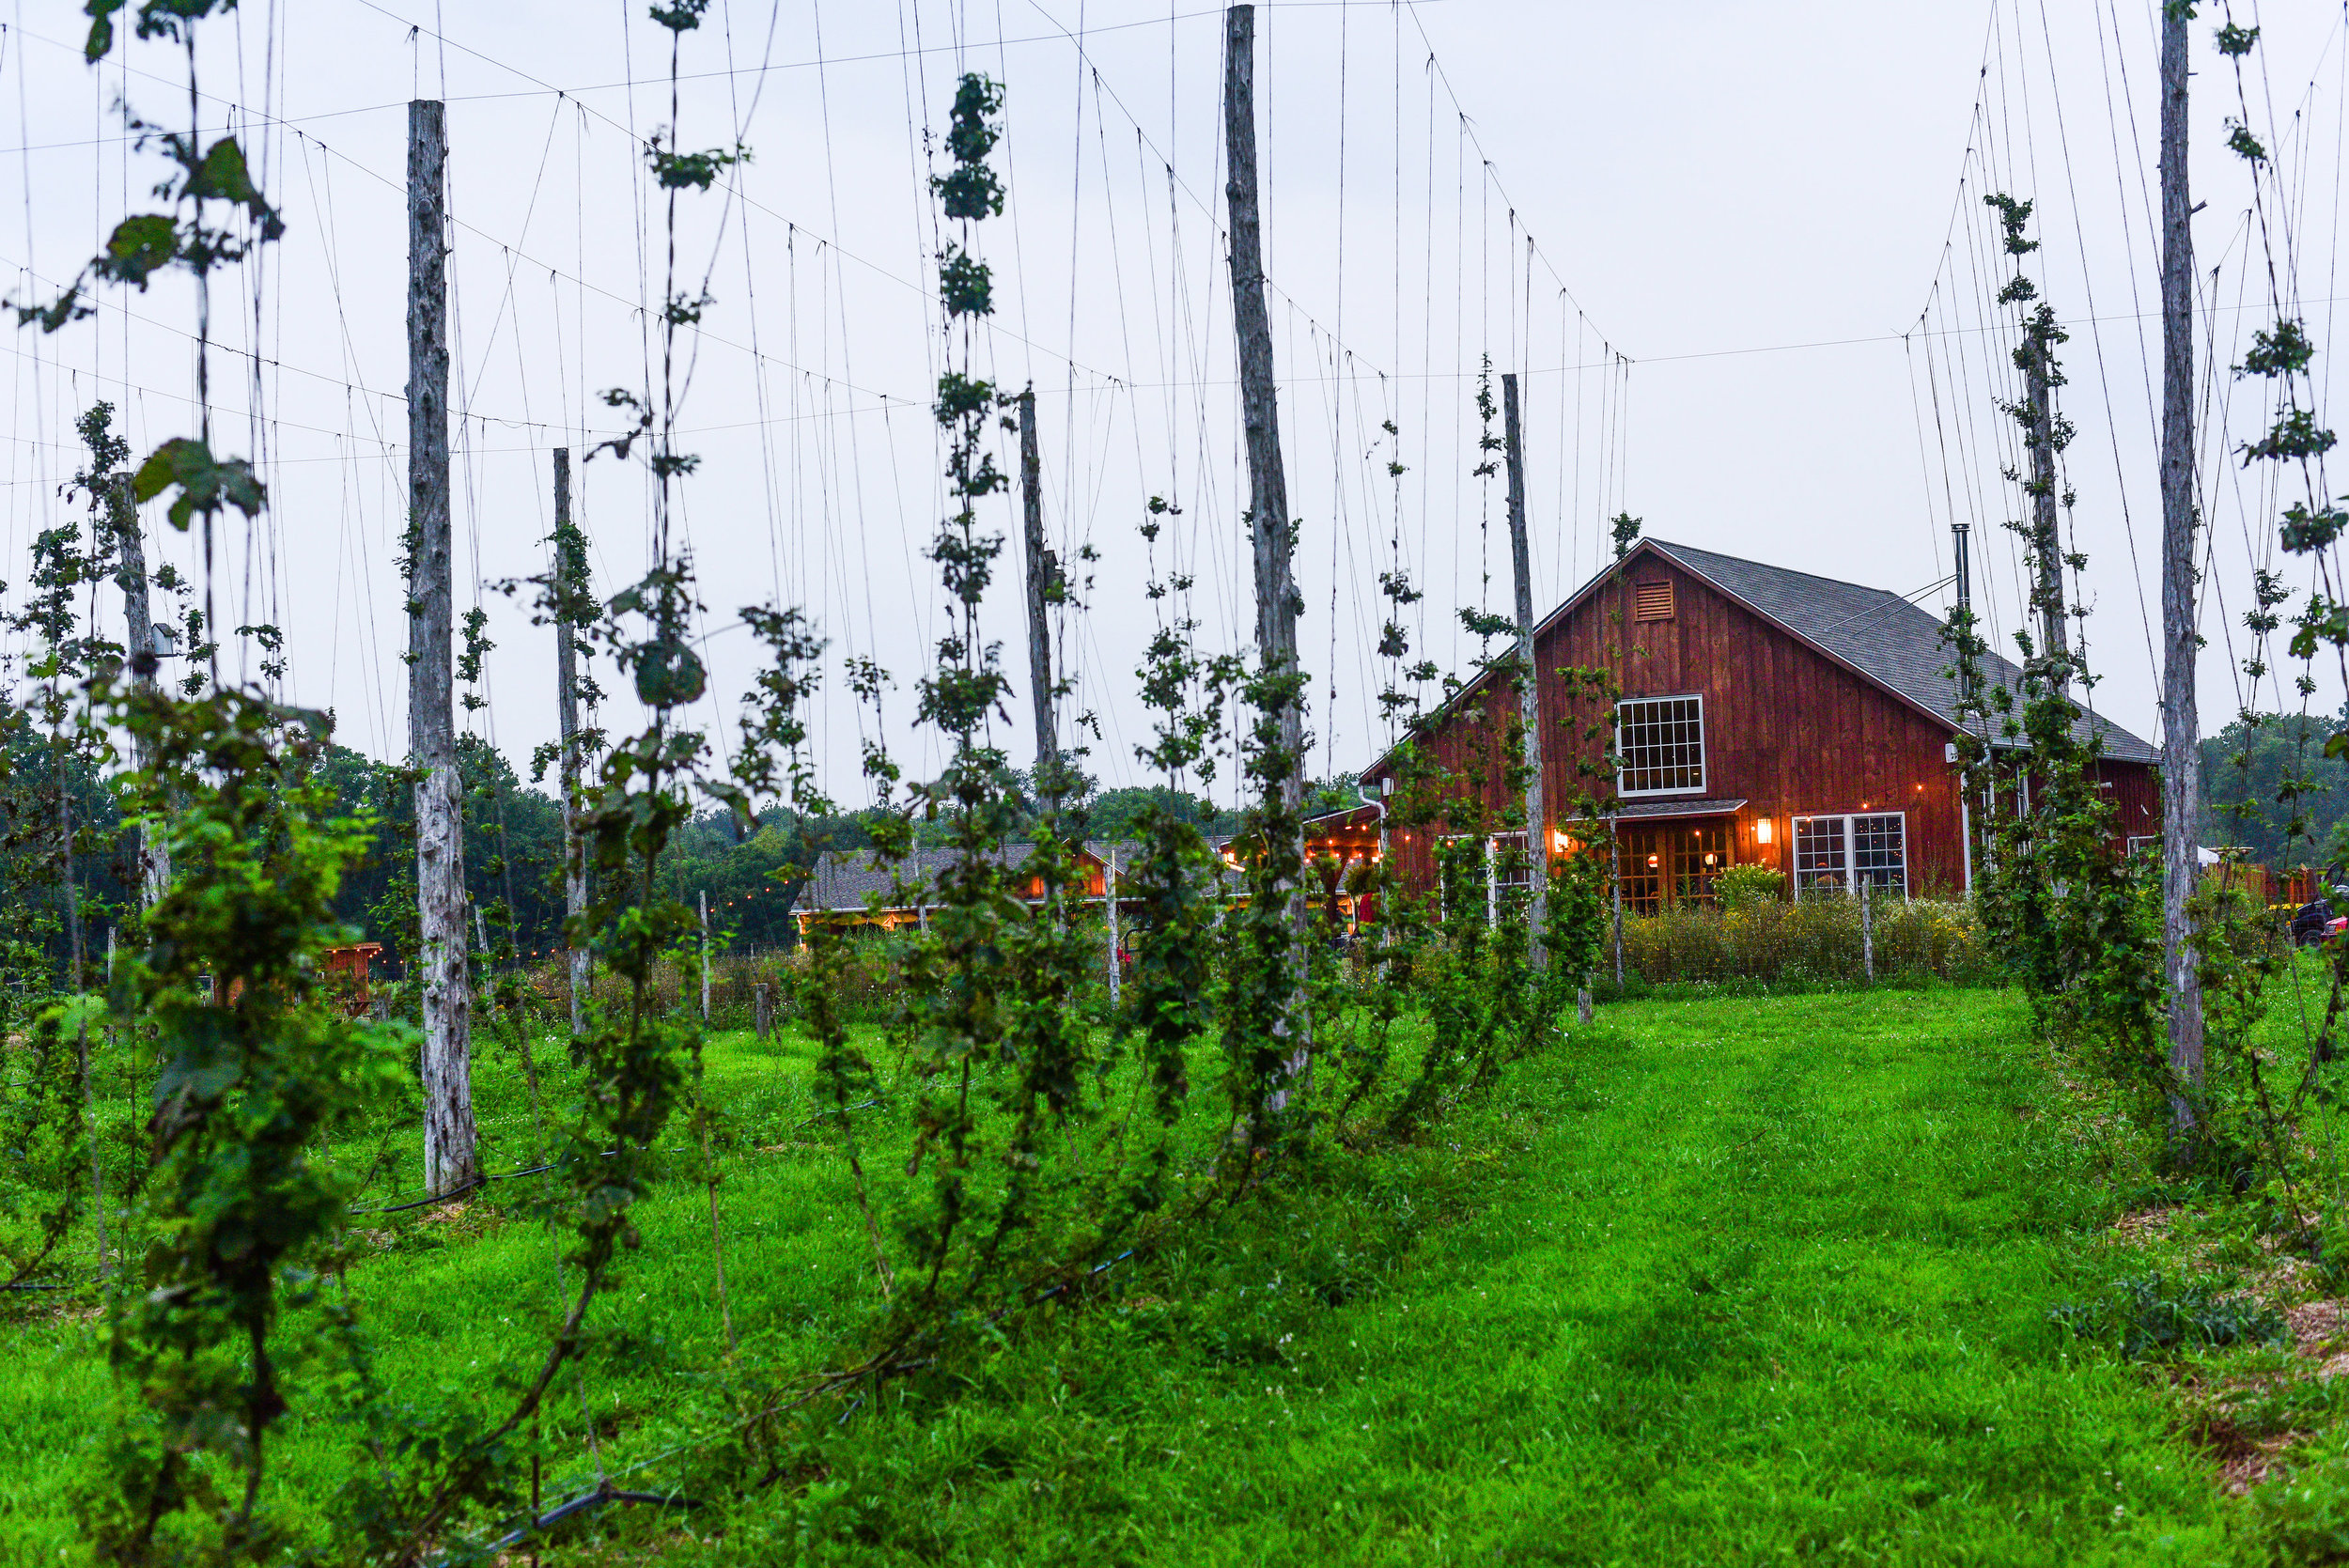 TAPROOM - Our Farm Brewery & Taproom are located in Accord, NY. Enjoy a pint with friends on the patio, take in some breathtaking sunsets over our fields and stroll through the dramatic trellis system of the hop yard.Lekker Food Truck is with us serving up a delicious rotating seasonal menu!Check out our events calendar below. We are looking forward to some great music and fun this season!WEDDINGS & PRIVATE EVENTS CLICK HERE.